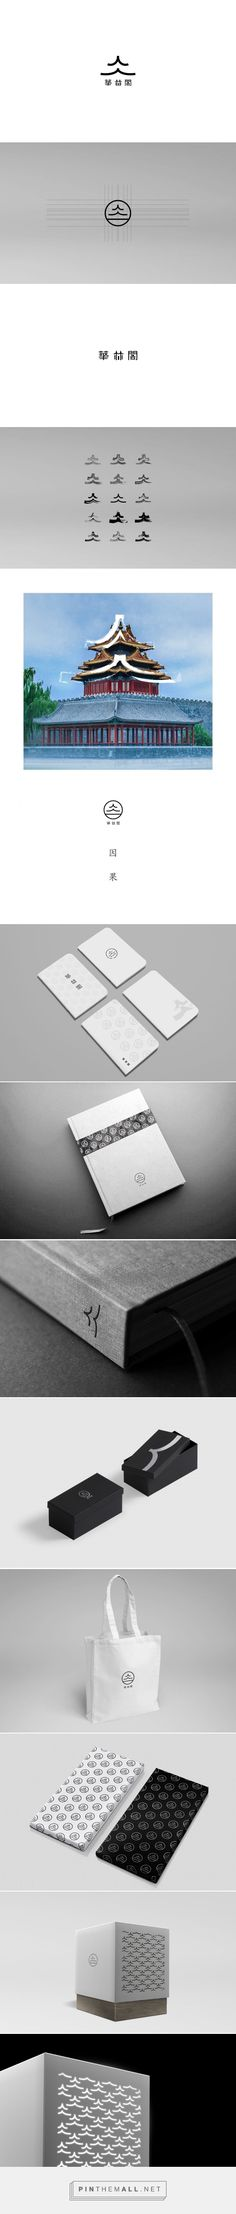 Hua Lin Ge temple brand packaging design by WingYang - http://www.packagingoftheworld.com/2016/12/hua-lin-ge.html